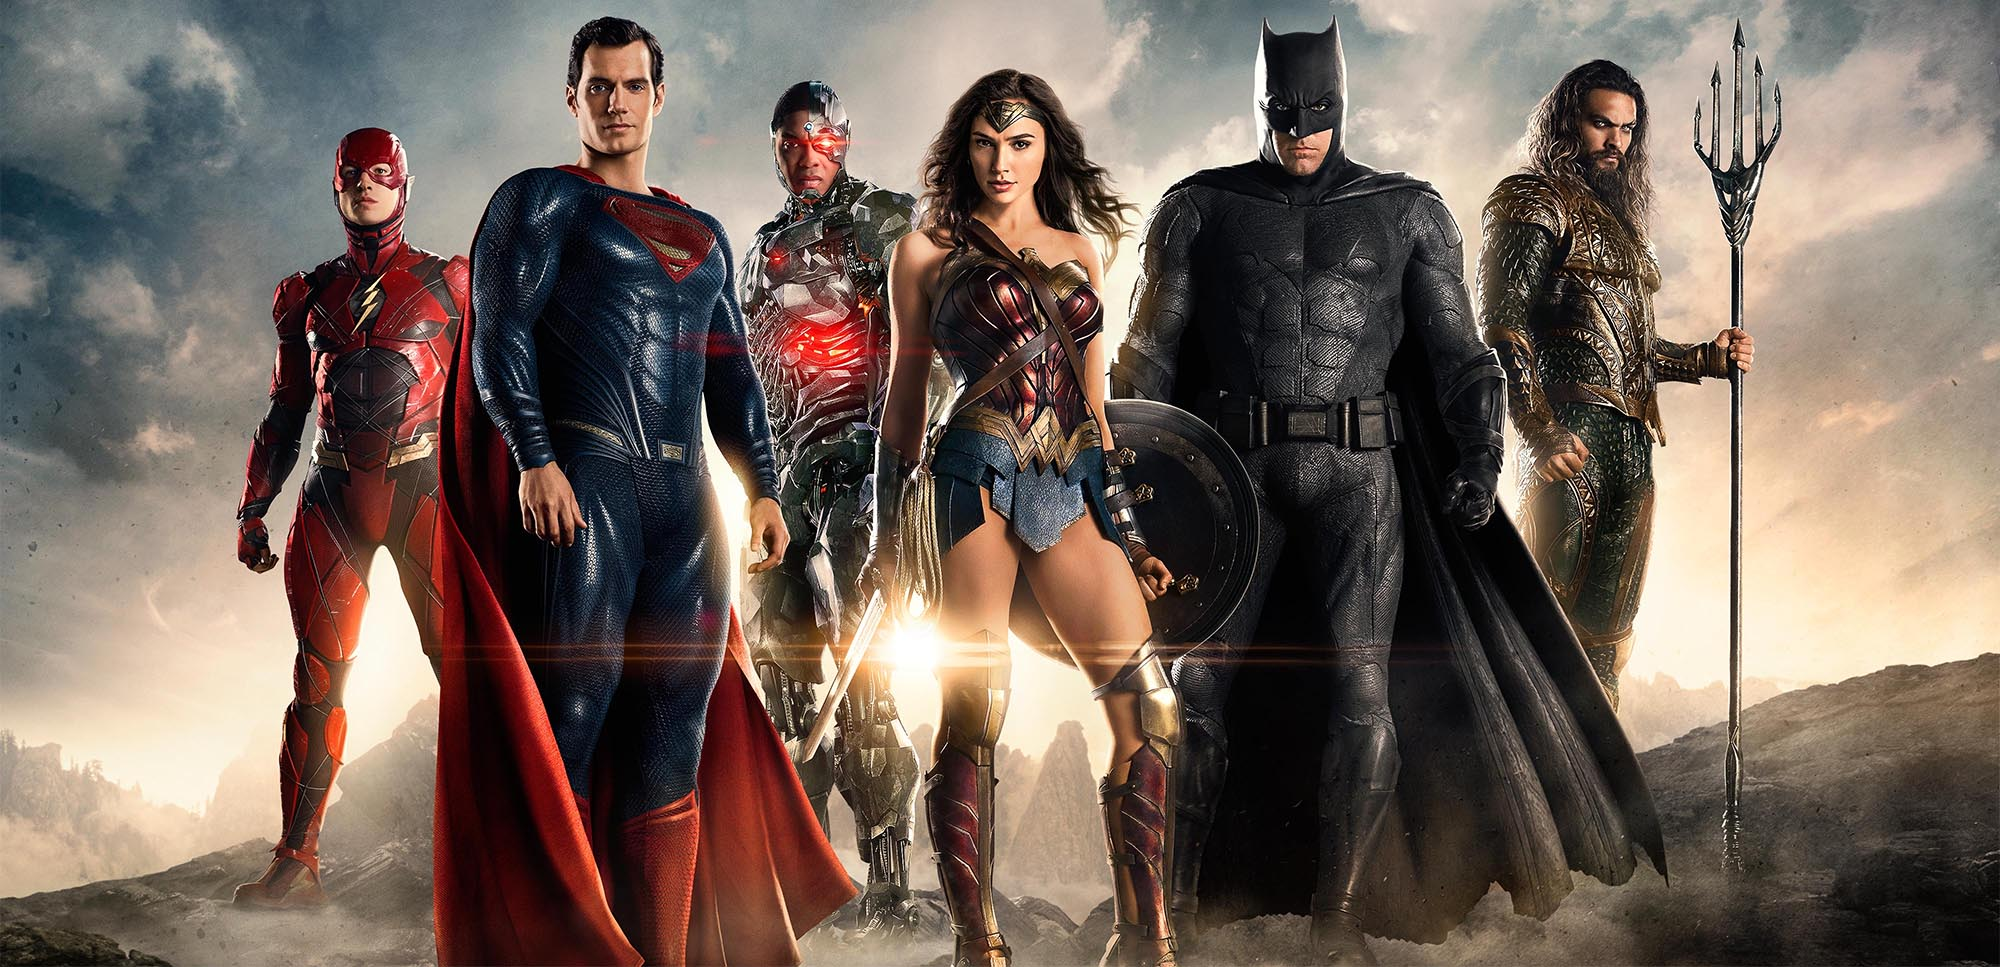 We have a deep affection for DC characters, especially Batman and Wonder Woman. Here are our two cents on how the creators can jazz up the DC universe.